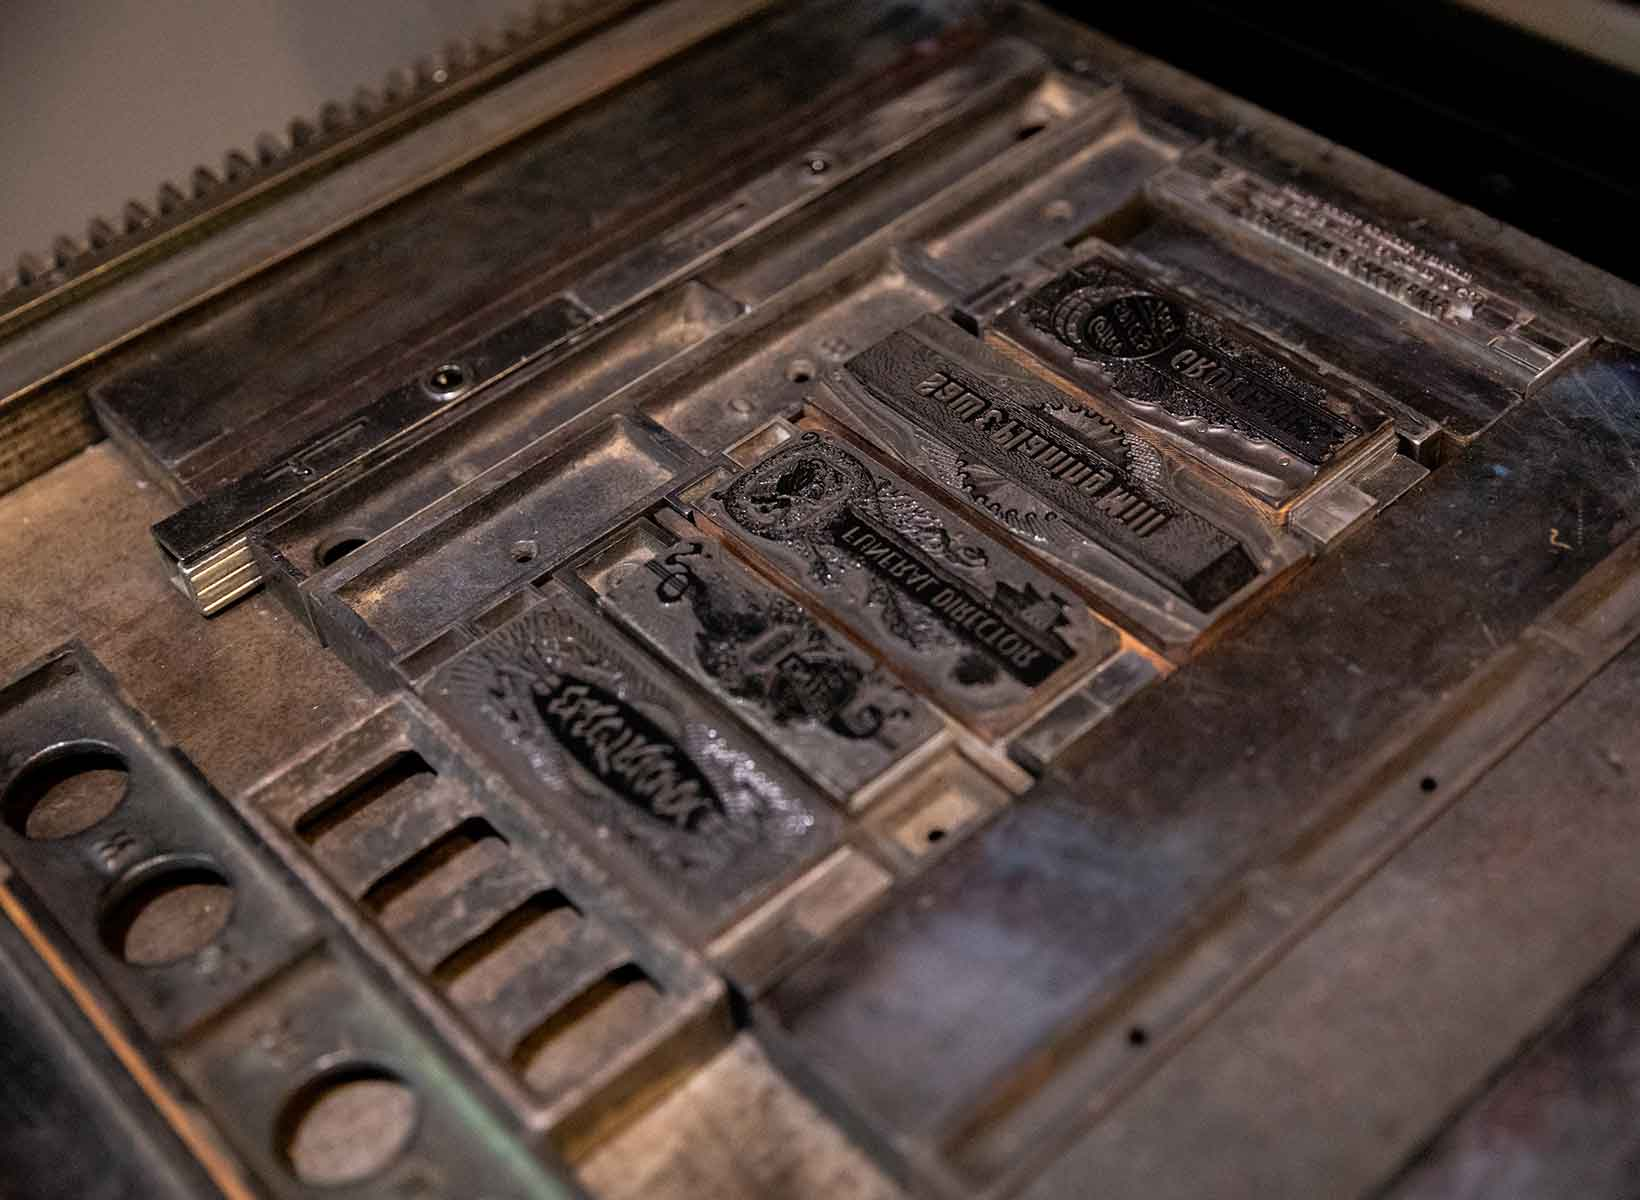 A closeup of the lead plates on a letterpress bed